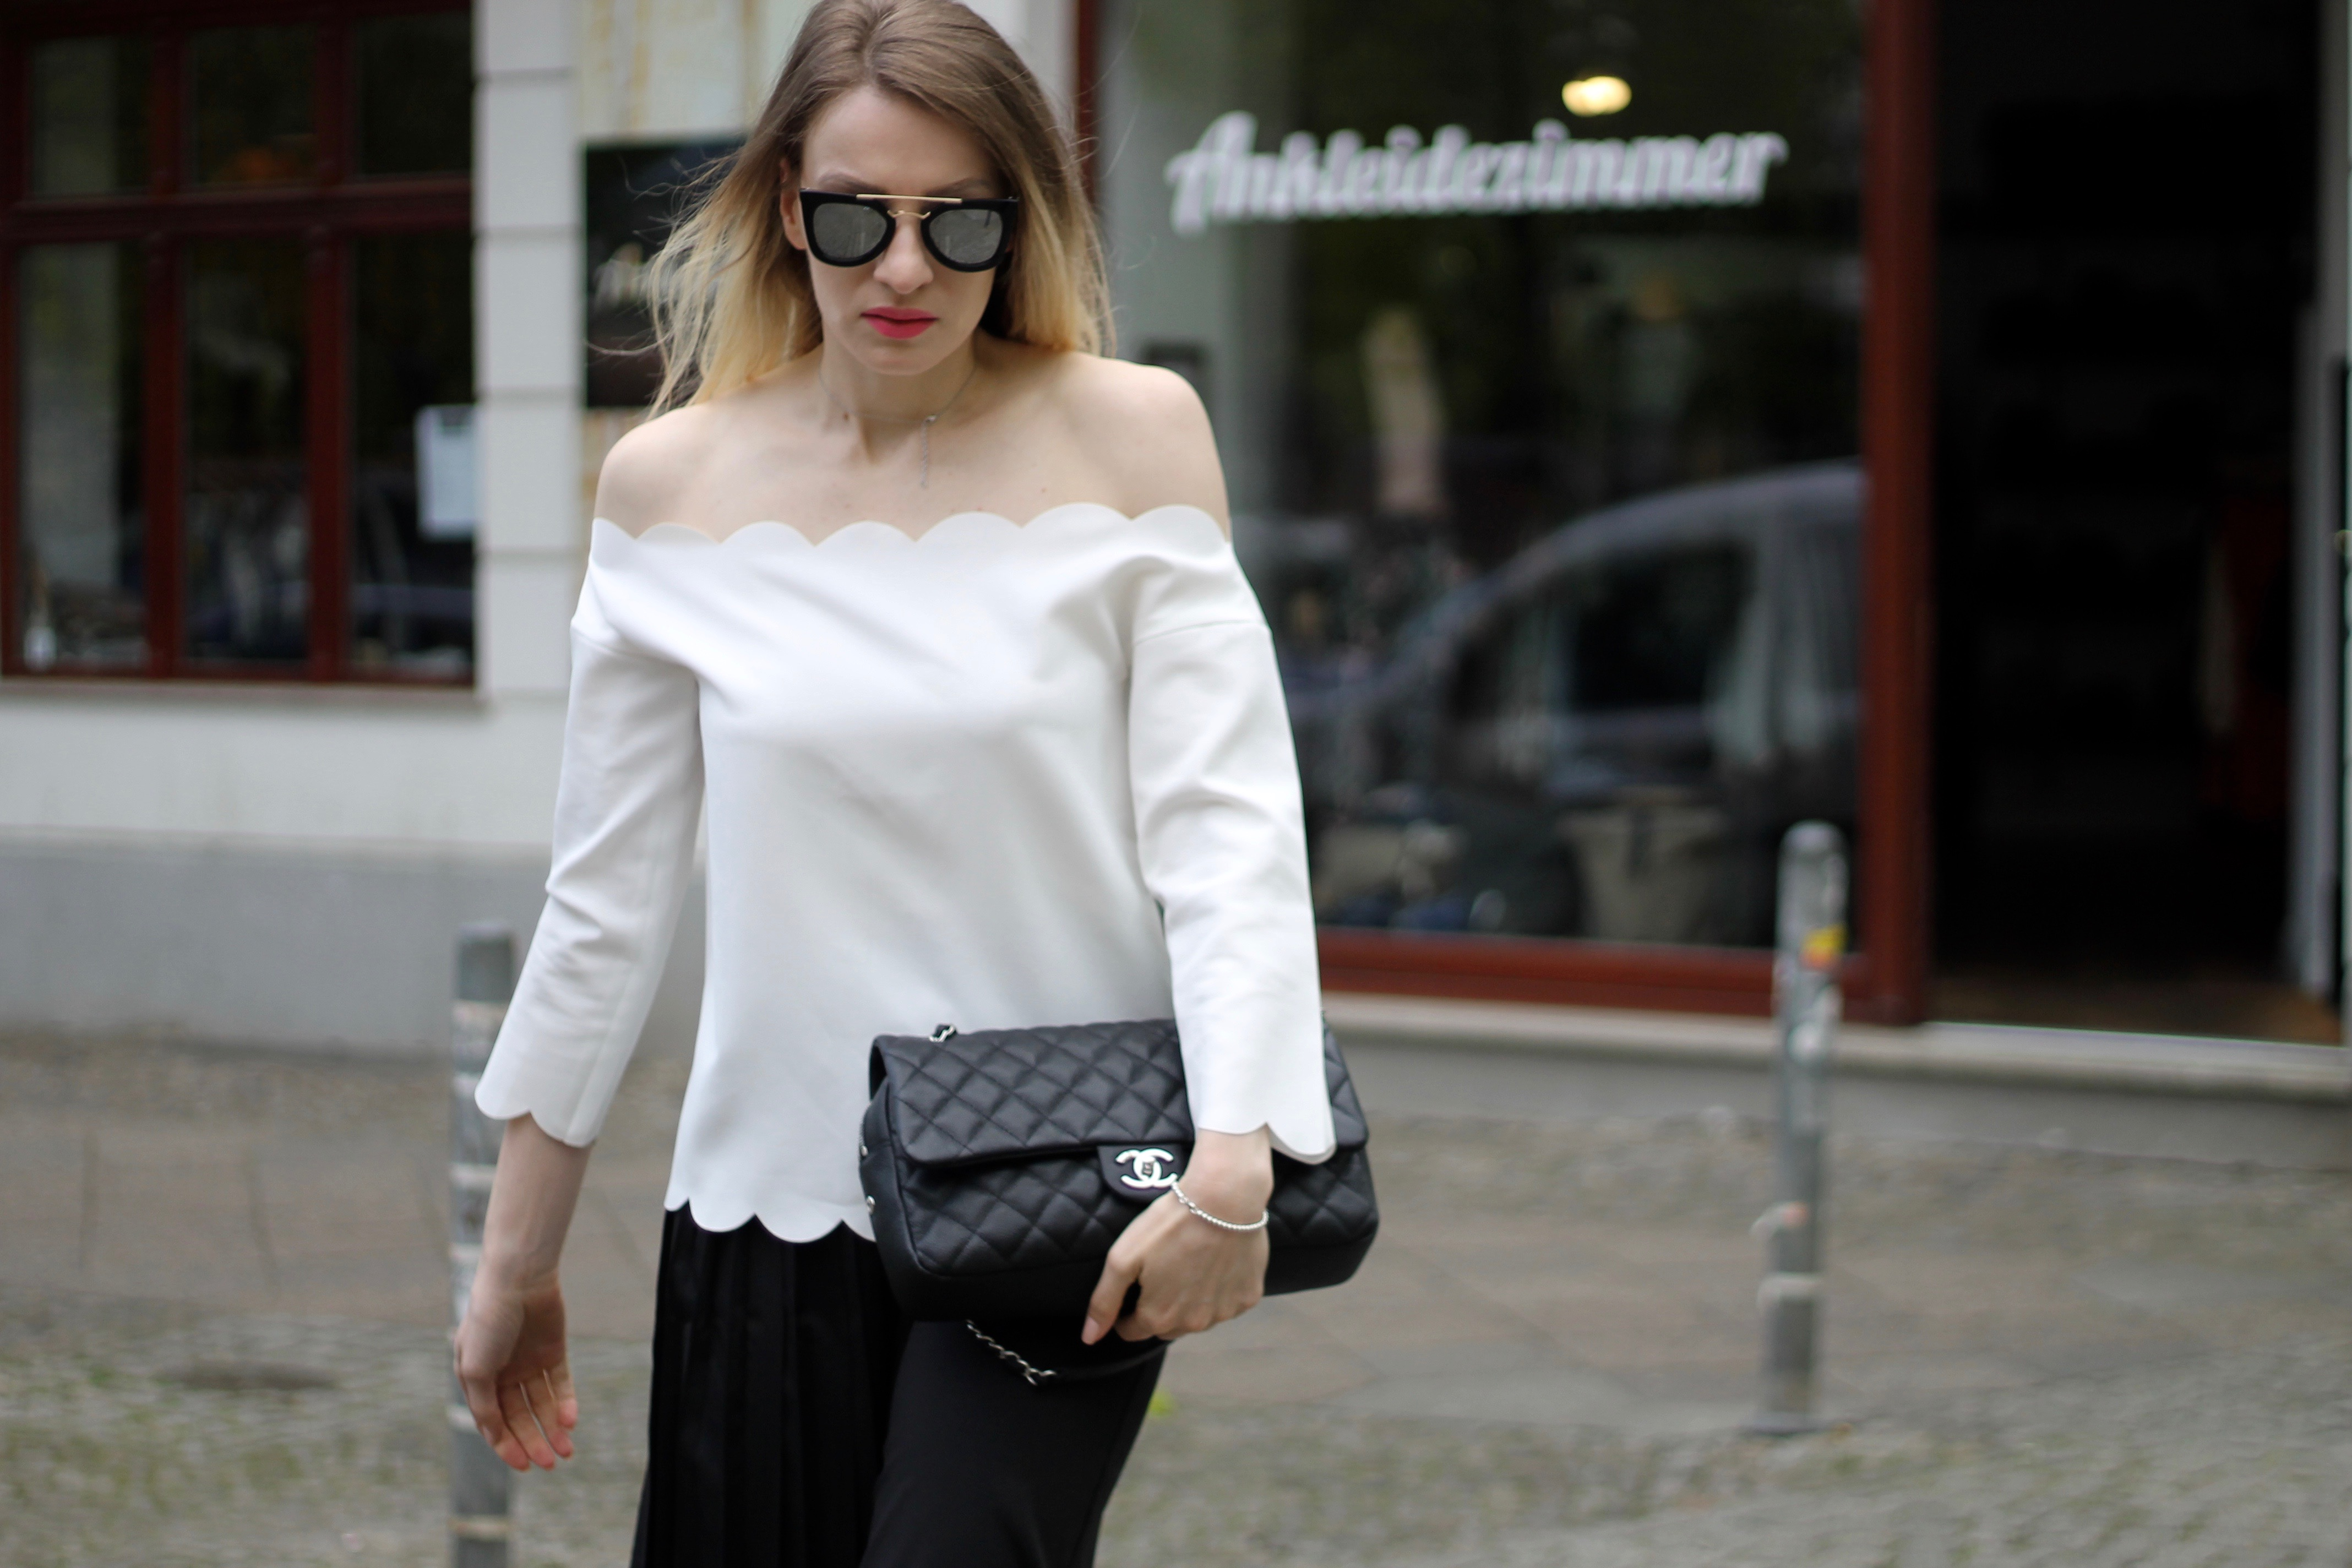 MON MODE | Fashion Blogger | Fashion Trends | Classic Chanel Outfit | Classic Flap Bag | Change Packing Up Moving | Berlin | Toronto